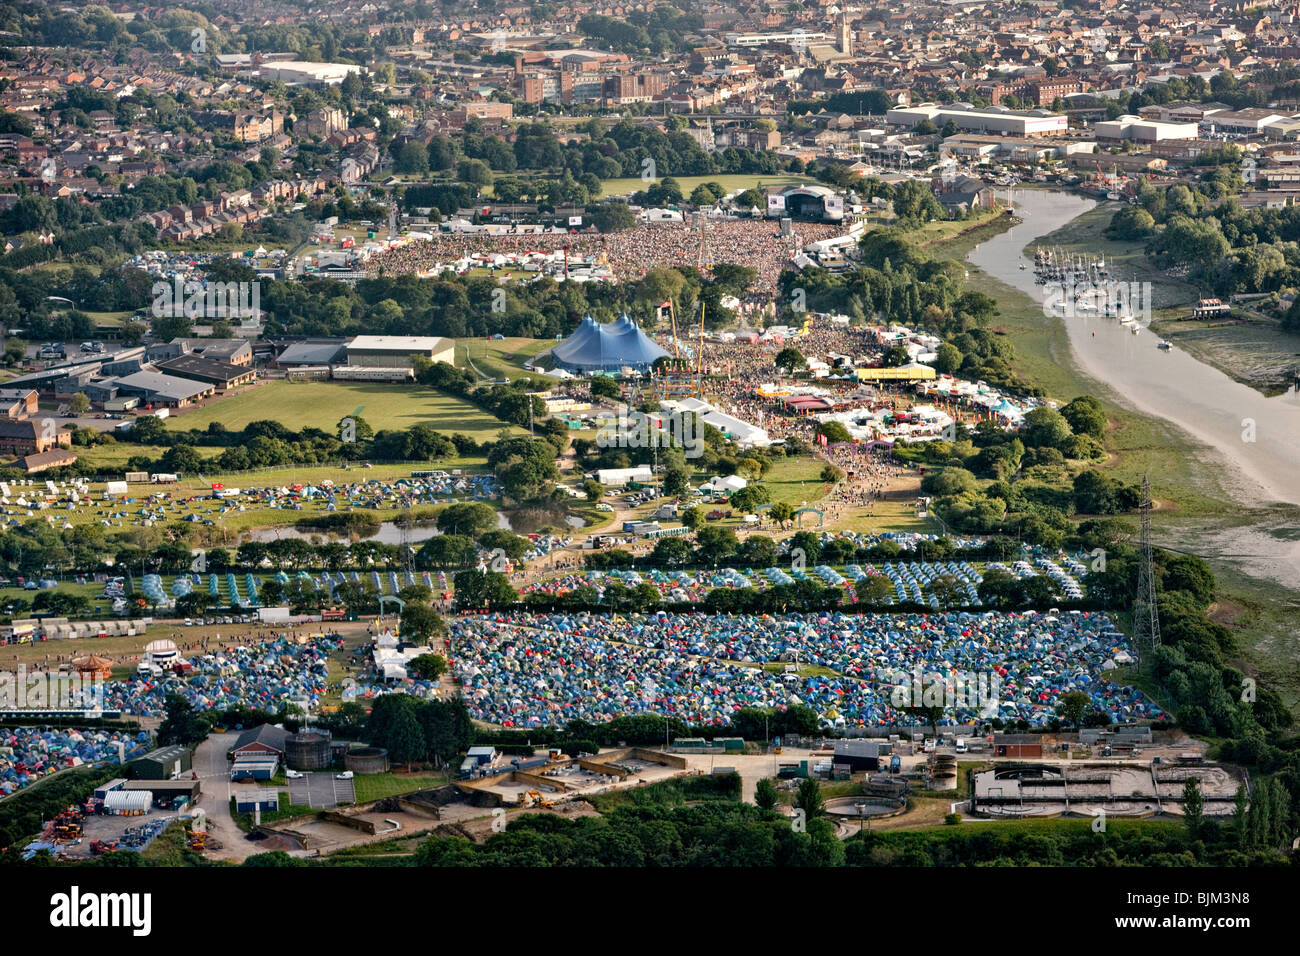 Aerial view of the Isle of Wight festival. Isle of Wight, England, UK Stock Photo